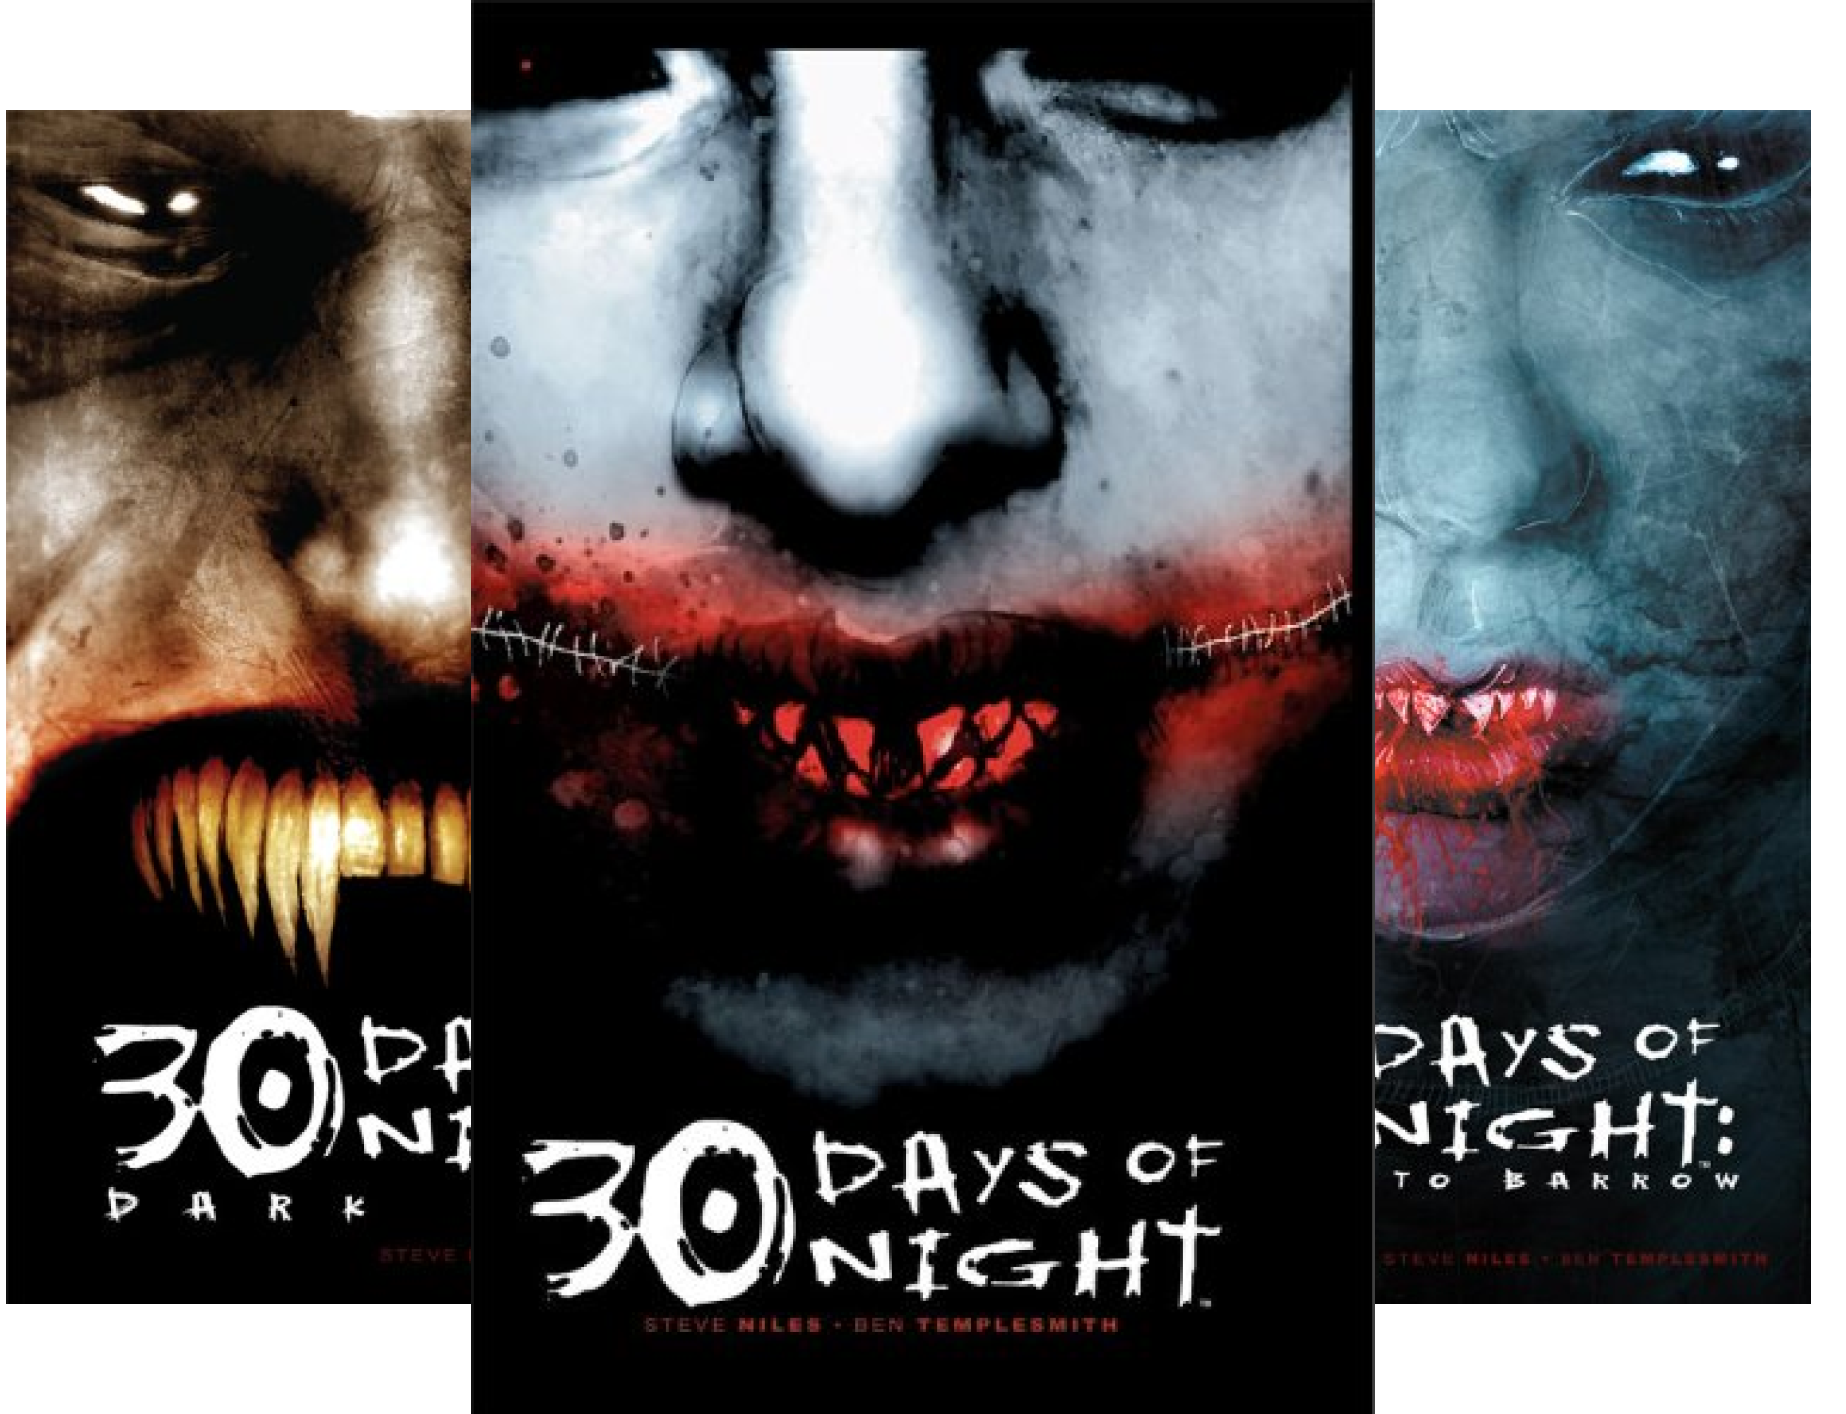 30 Days of Night (3 Book Series)